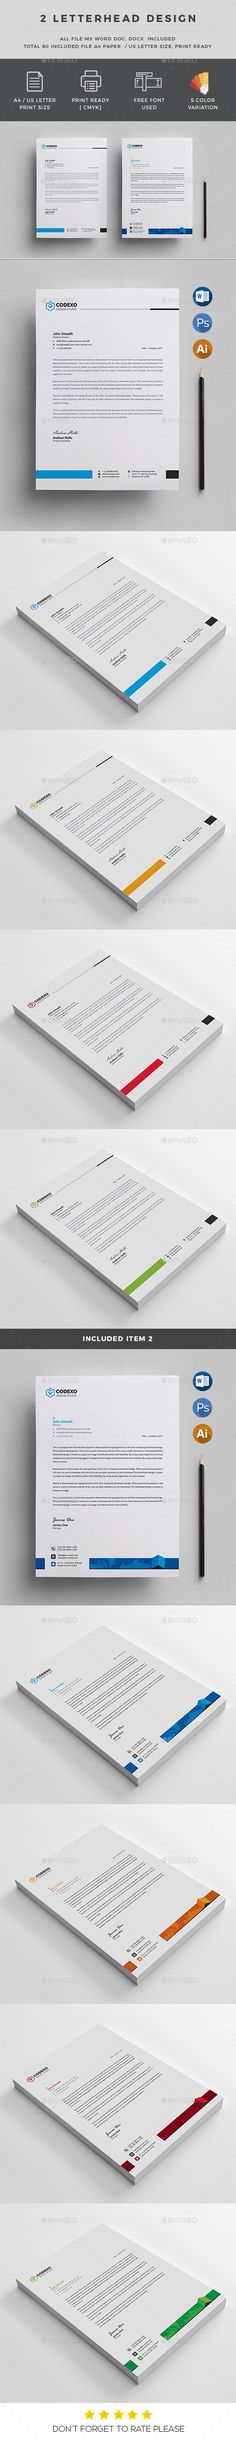 #Letterhead Template - Stationery Print #Templates Download here: https://graphicriver.net/item/letterhead-template/19541957?ref=alena994